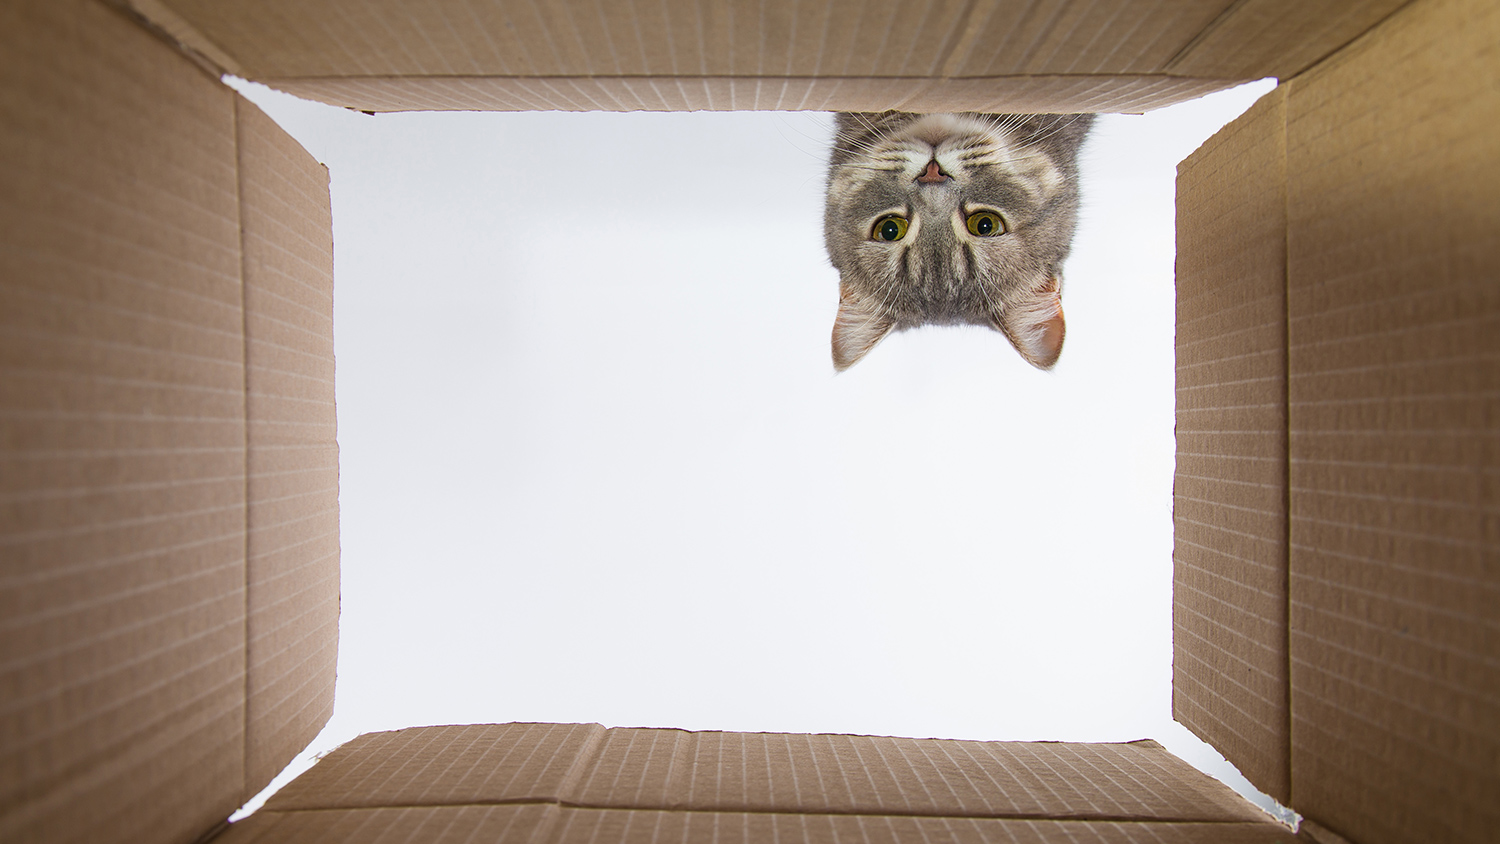 Picture of a lost cat in a box